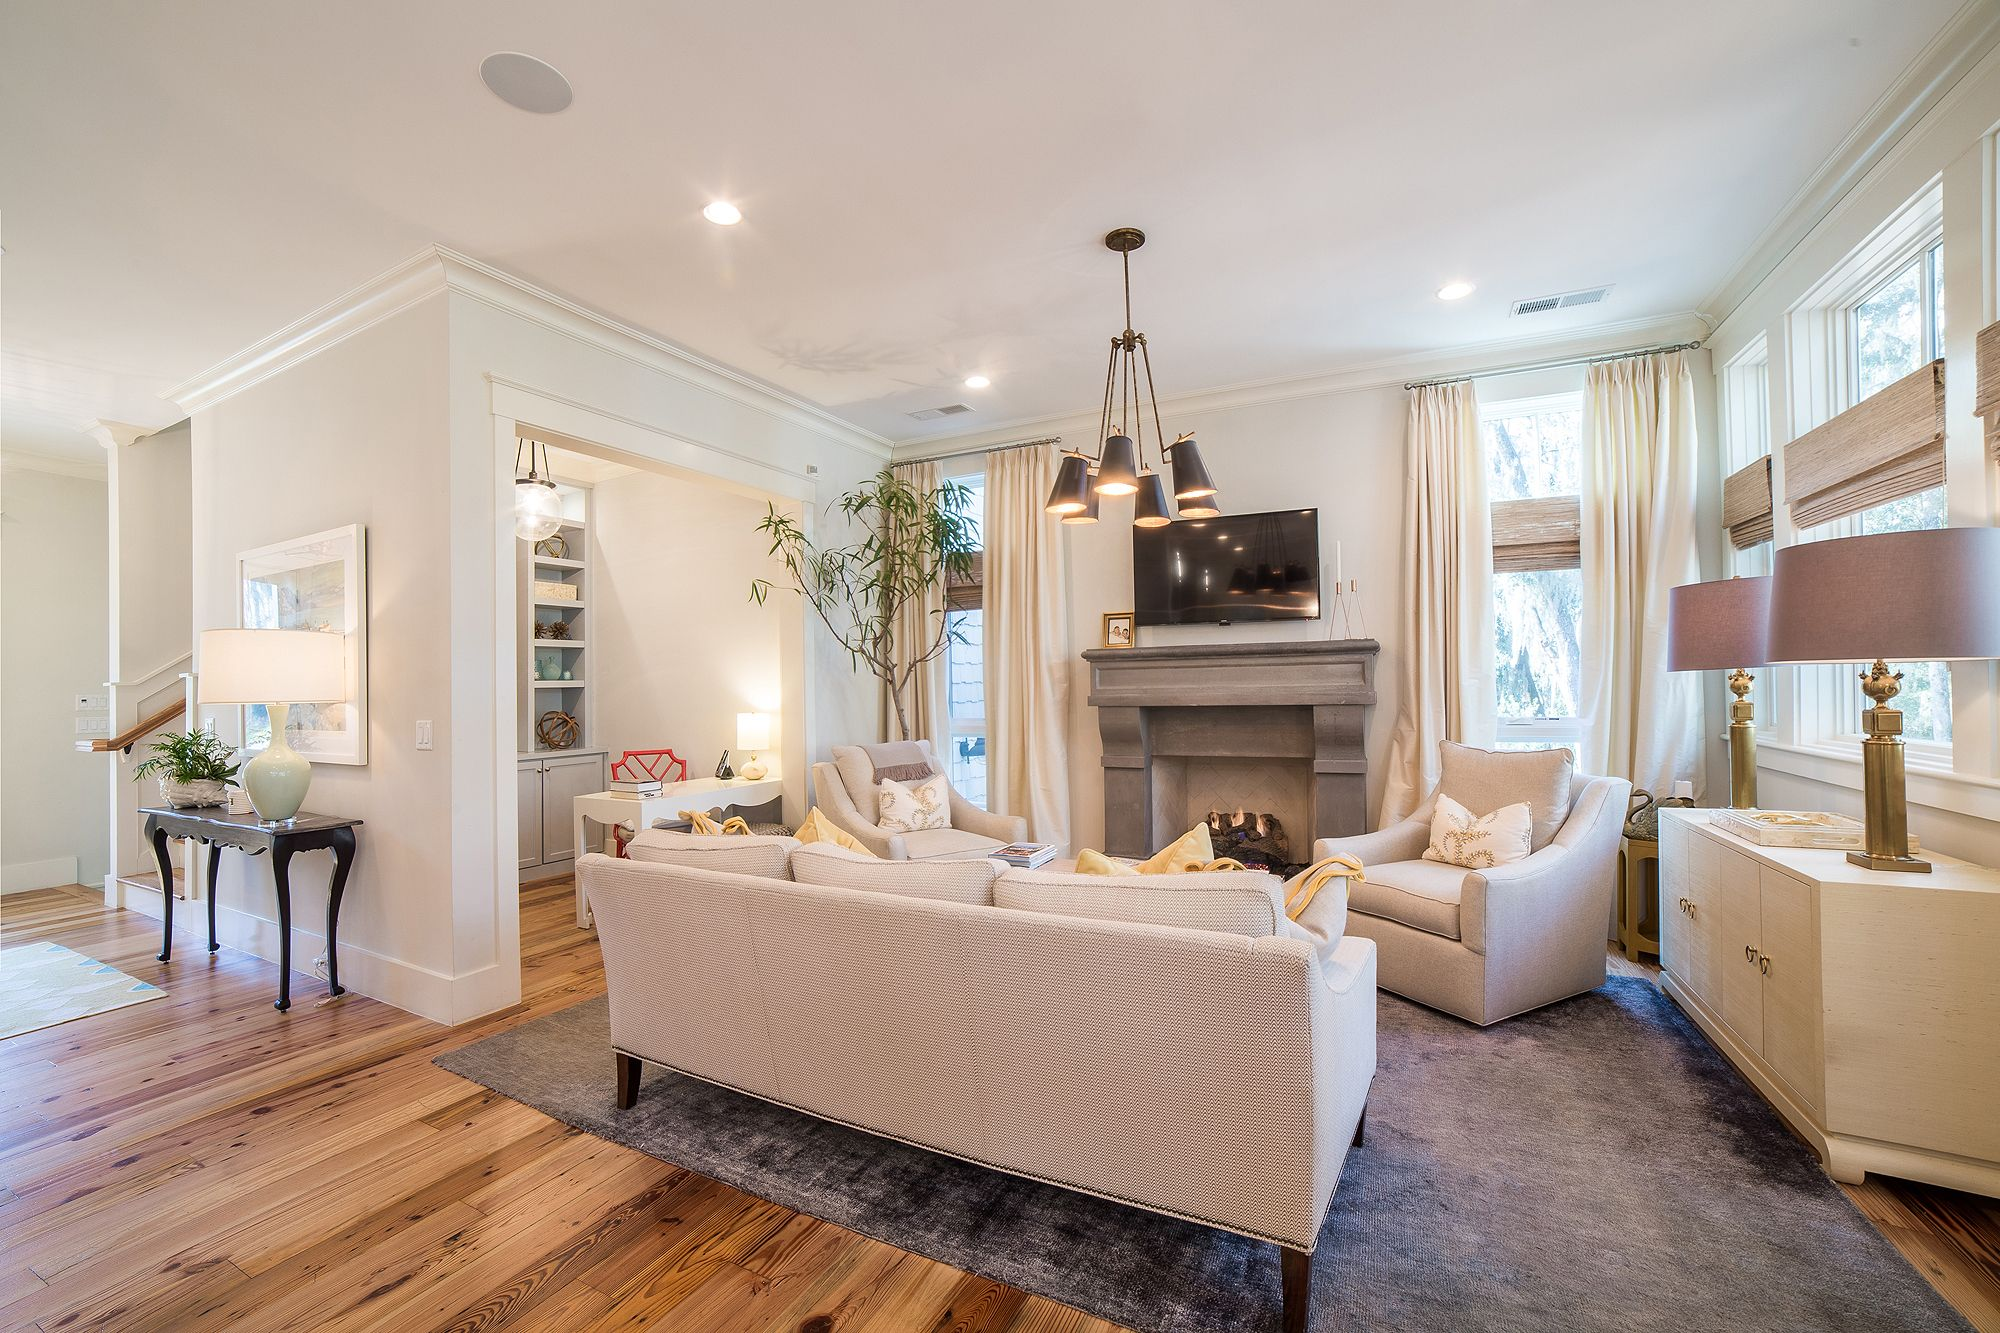 Neutral Tone Living Room Inspiration Southern Style Interior Design Ideas Vacation Real Estate Bluffton South Carolina